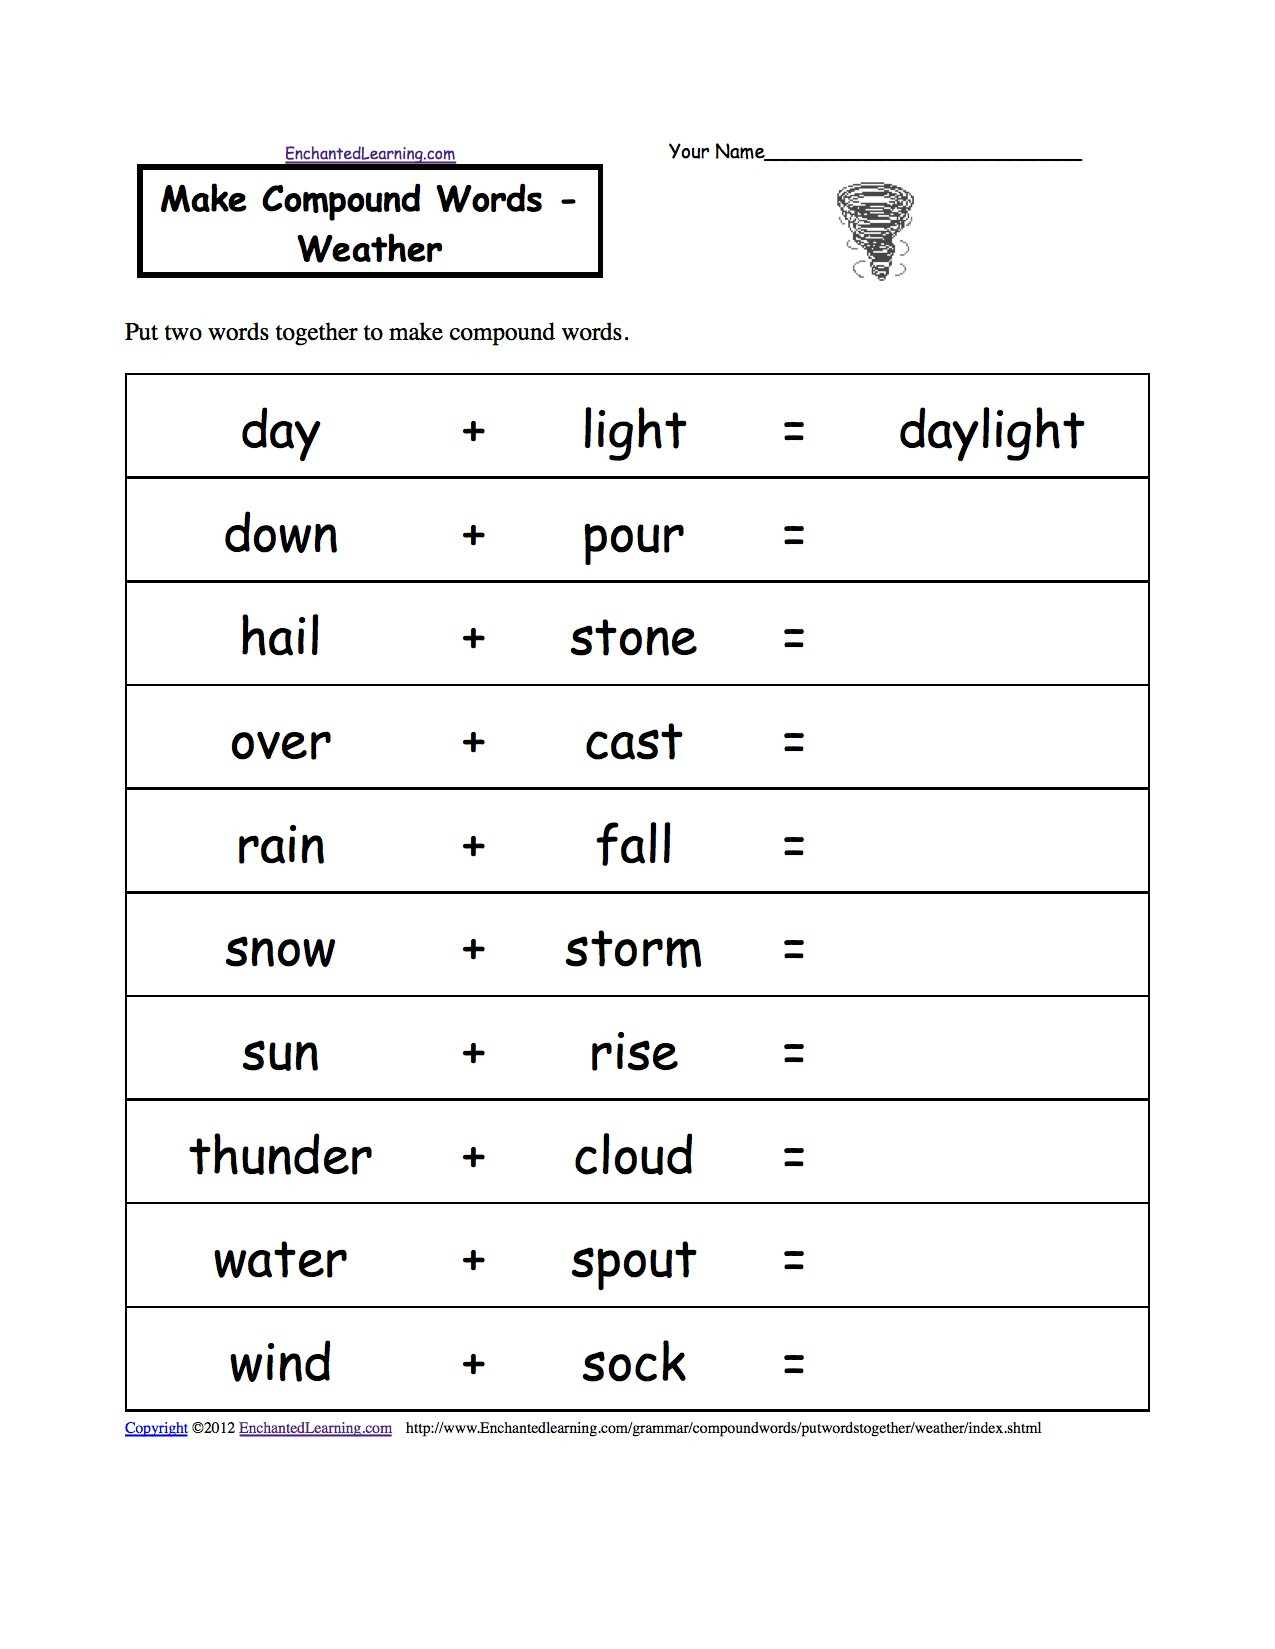 Free Printable Science Worksheets For 2Nd Grade – Worksheet Template | Free Printable Science Worksheets For 2Nd Grade